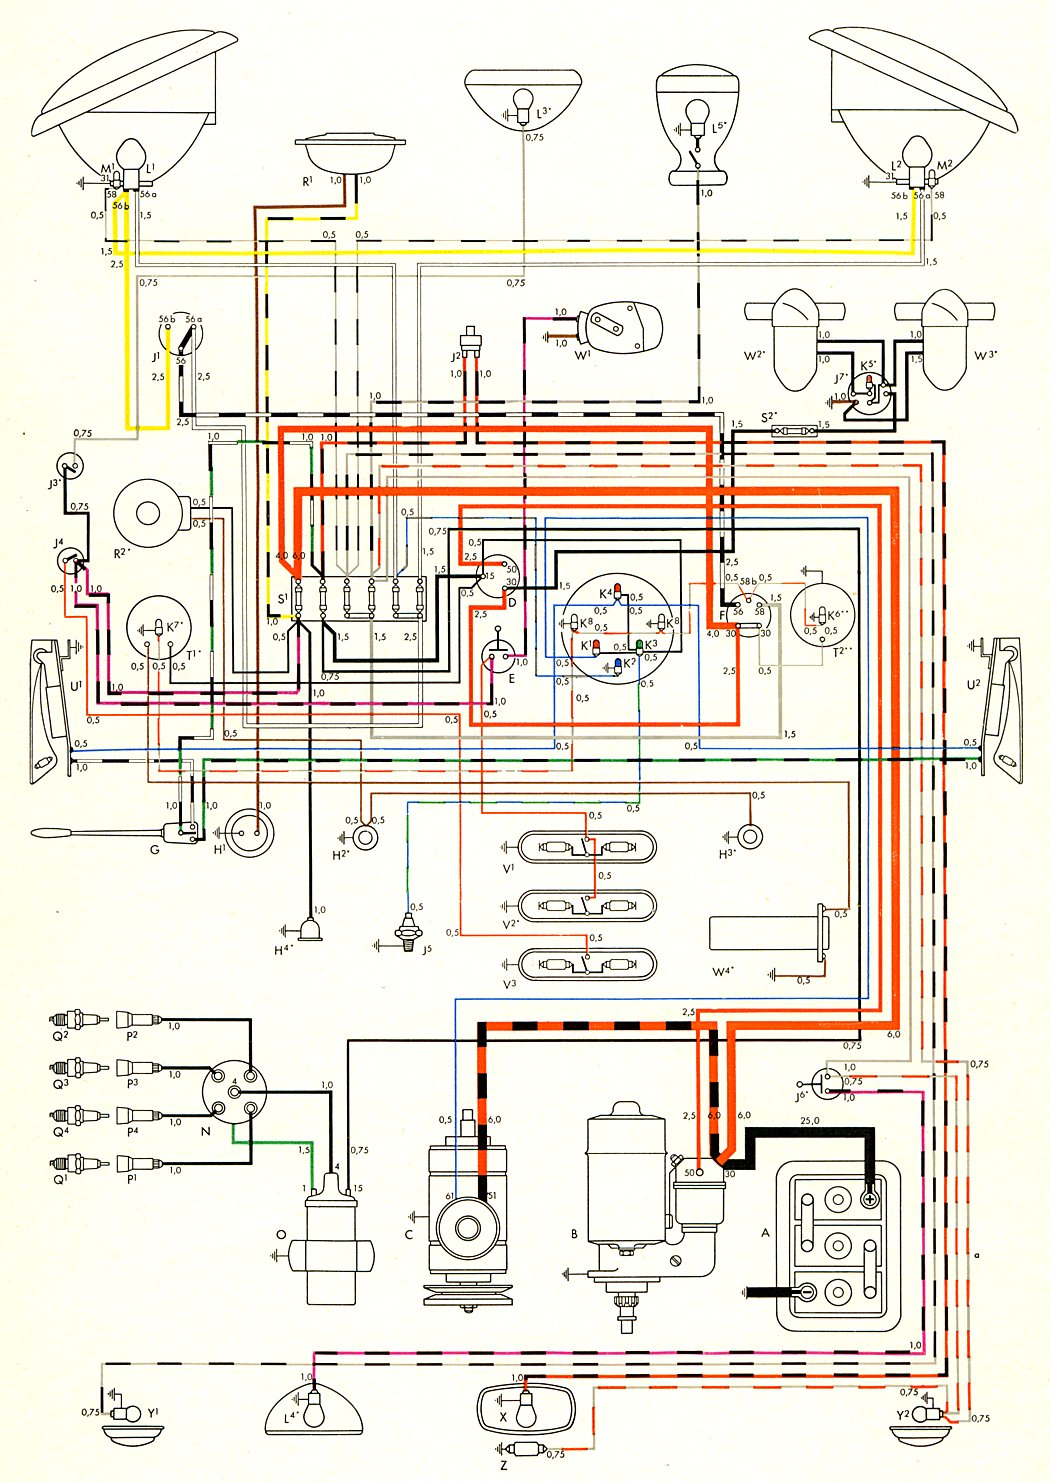 Vw Beetle Starter Motor Wiring Diagram : Thesamba type wiring diagrams